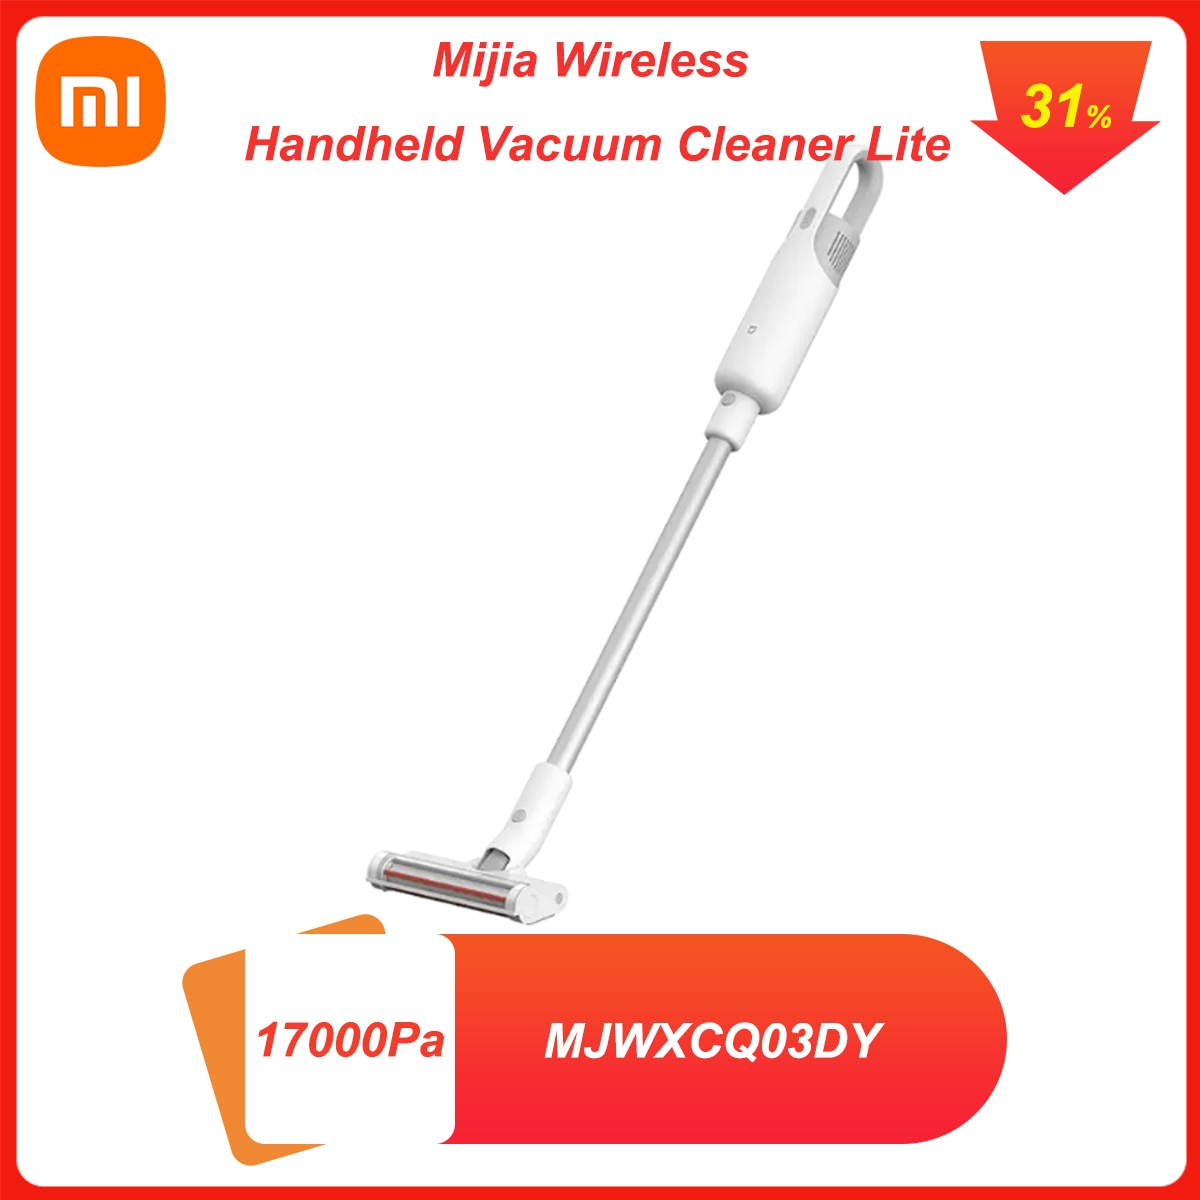 Xiaomi Mijia Wireless Handheld Vacuum Cleaner Lite 17000Pa Suction Low Noise Car Household with Multifunctional Brush CN Version